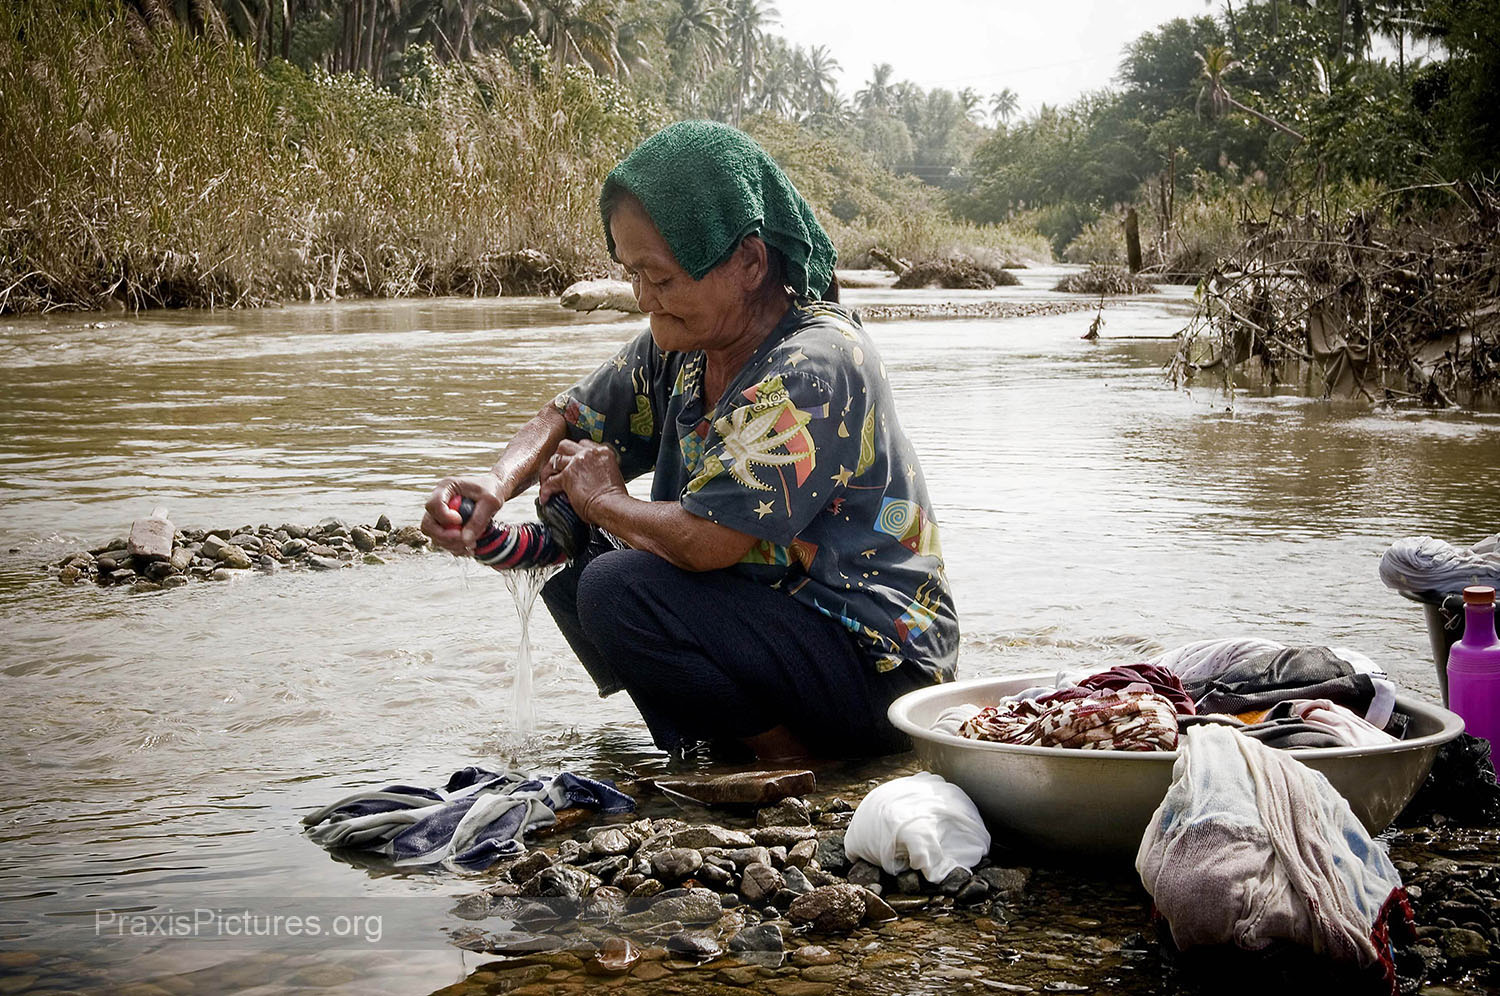 REMY - Remy washes her laundry in the poisoned Mogpog River in the Phillippine island of Marinduque. In 1993 one of the tailings dams of the Marcopper Mine burst sending tons of mine waste raging down the river in a flash flood sweeping away homes, people and livestock. Three years later a second collapse sent waste in the opposite direction destroying the Boac river. To this day both of the islands main rivers remain biologically dead and contain dangerous levels of toxic chemicals. Dead trees and other debris can still be seen all along the rivers. But people here have no other water sources to rely on.